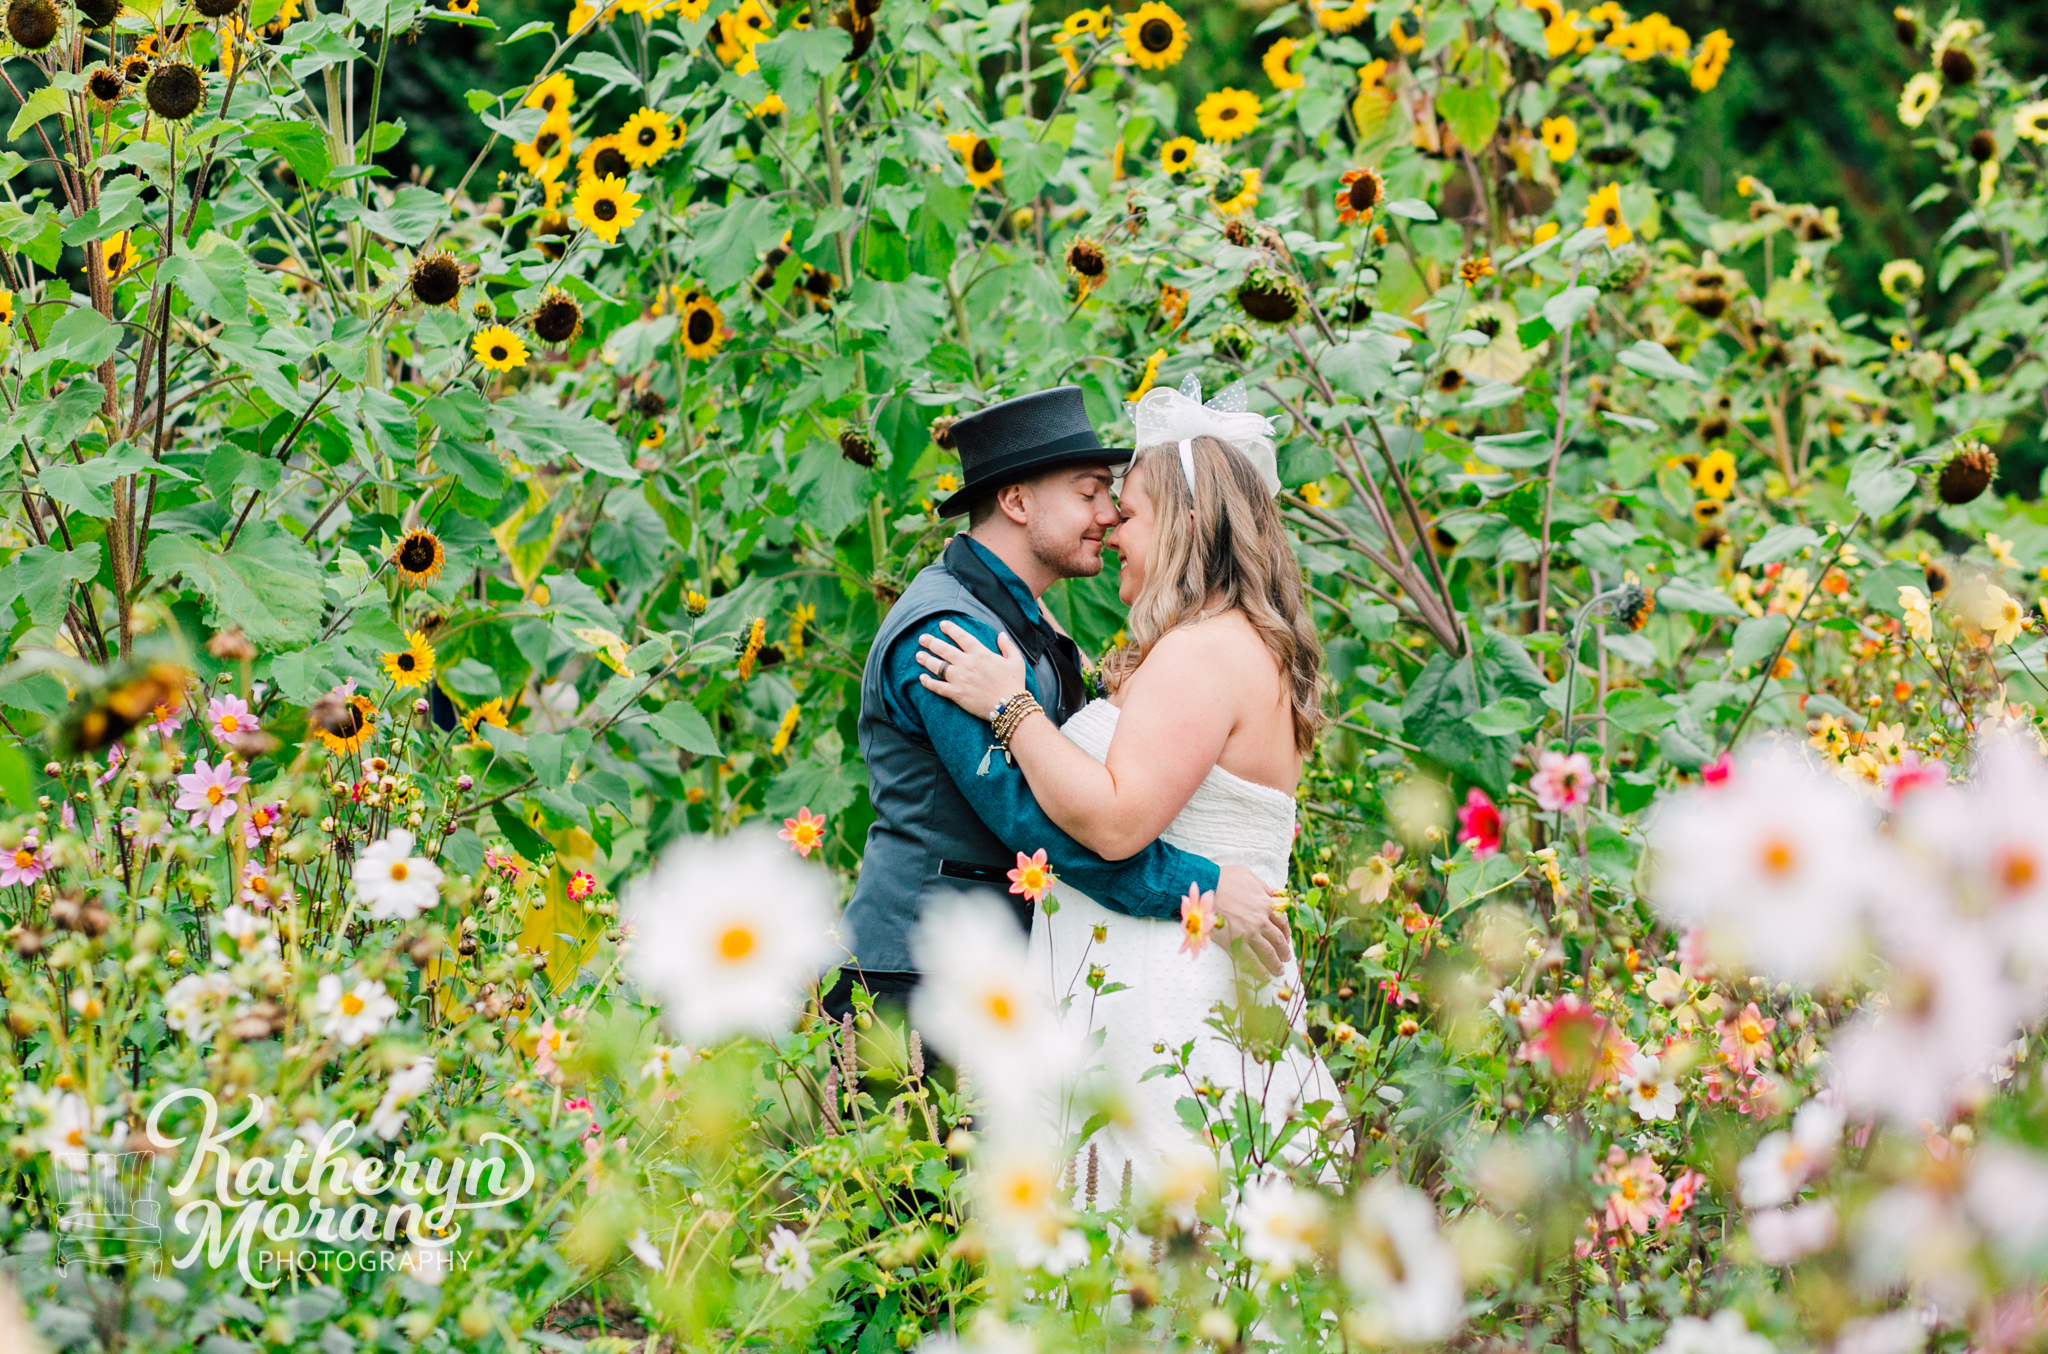 bellingham-wedding-photographer-katheryn-moran-emma-eric-2018-362.jpg